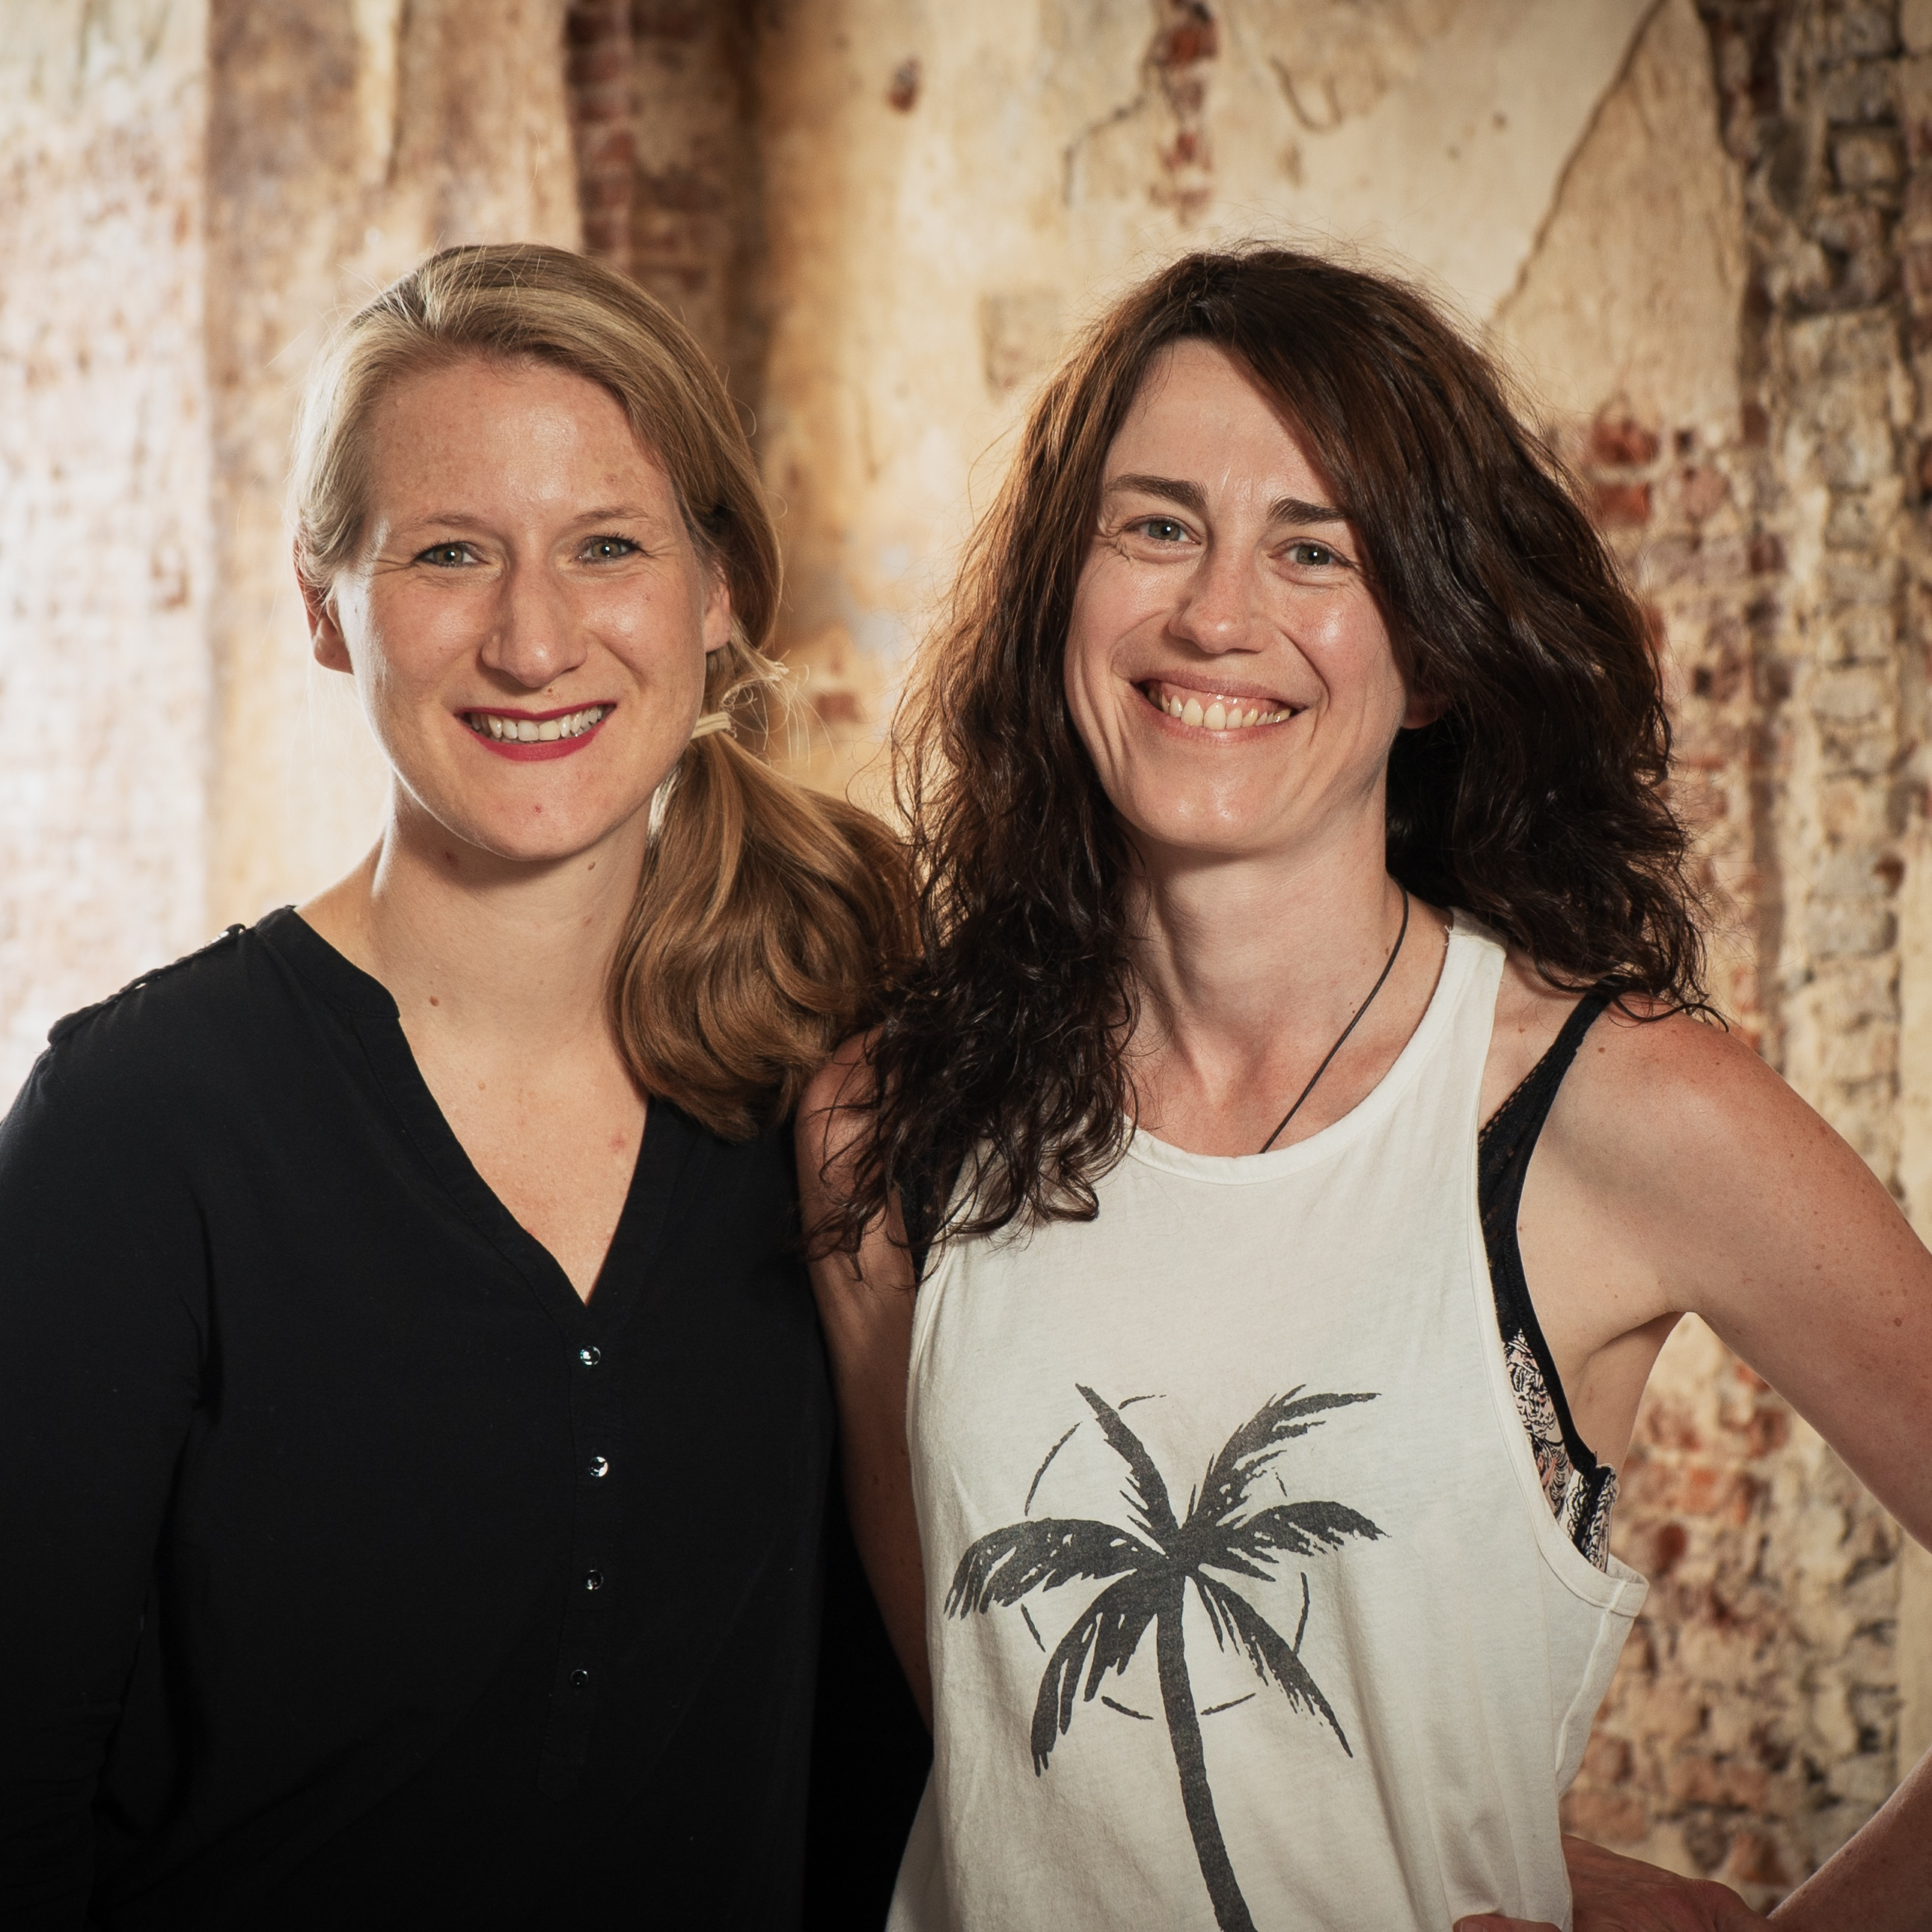 Kasia Pokrop and Nina Jonker-Voelker from Mamamoon Retreats